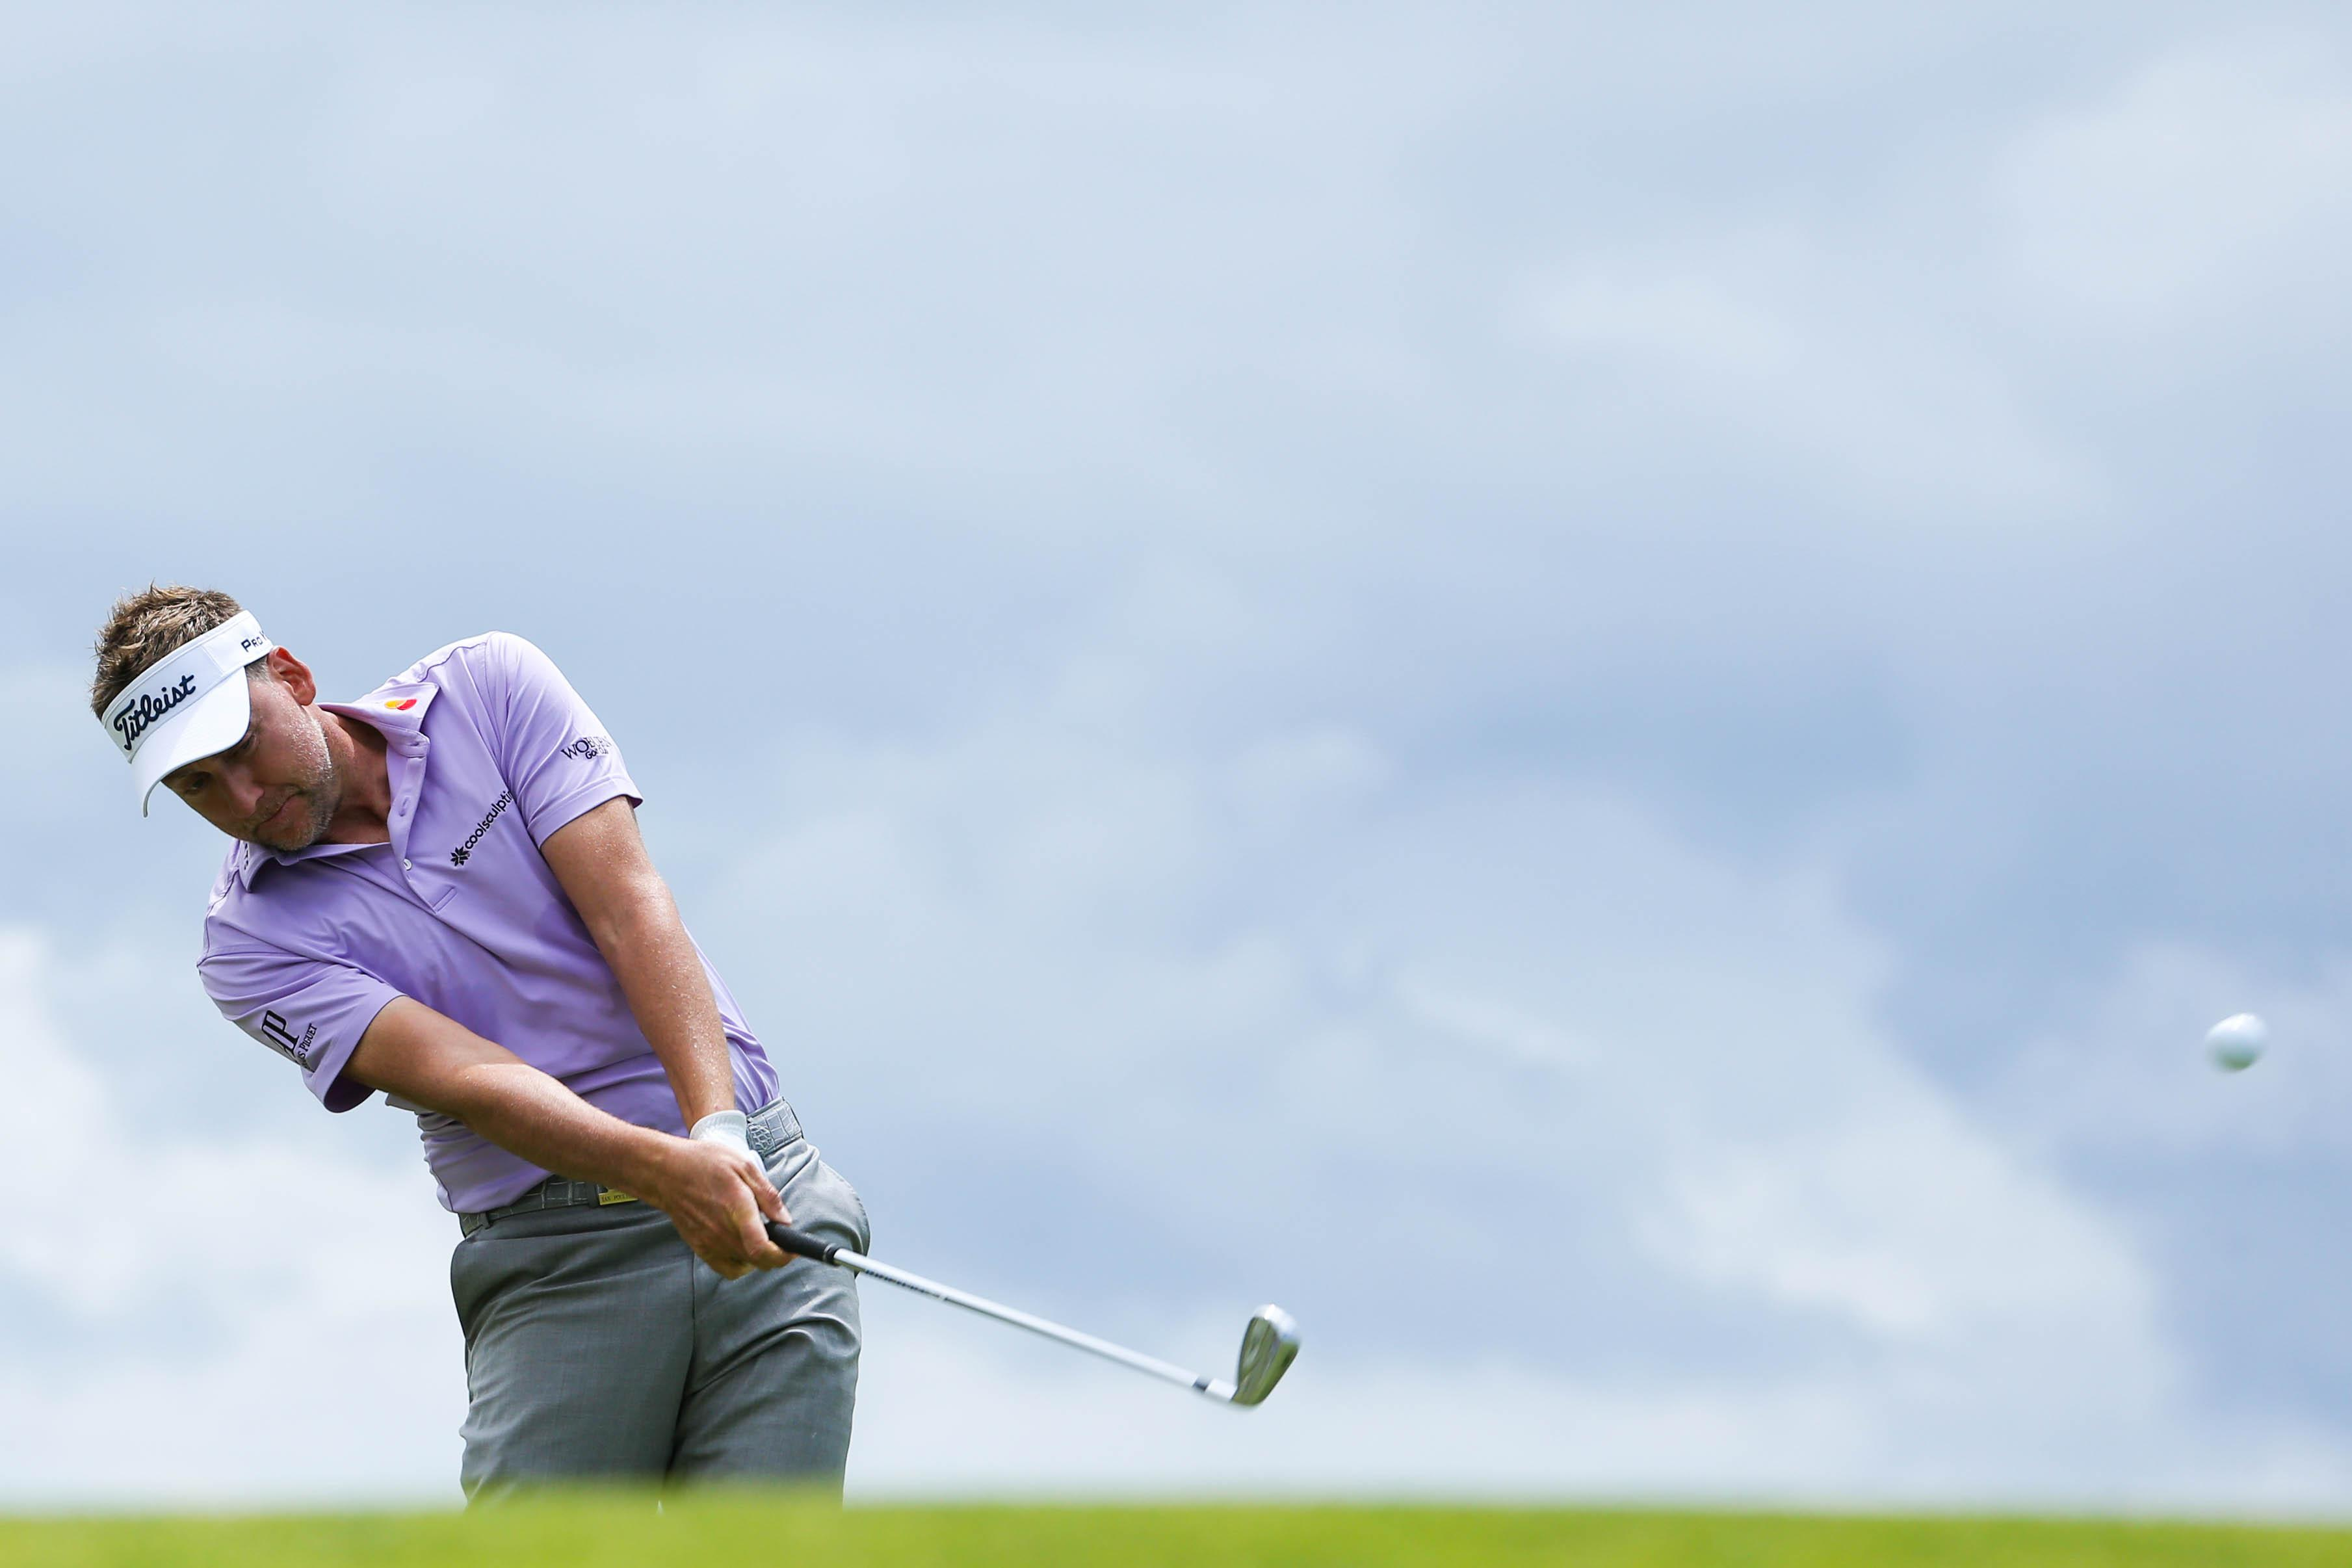 Ian Poulter was on a roll with three birdies in four holes before the breakdown